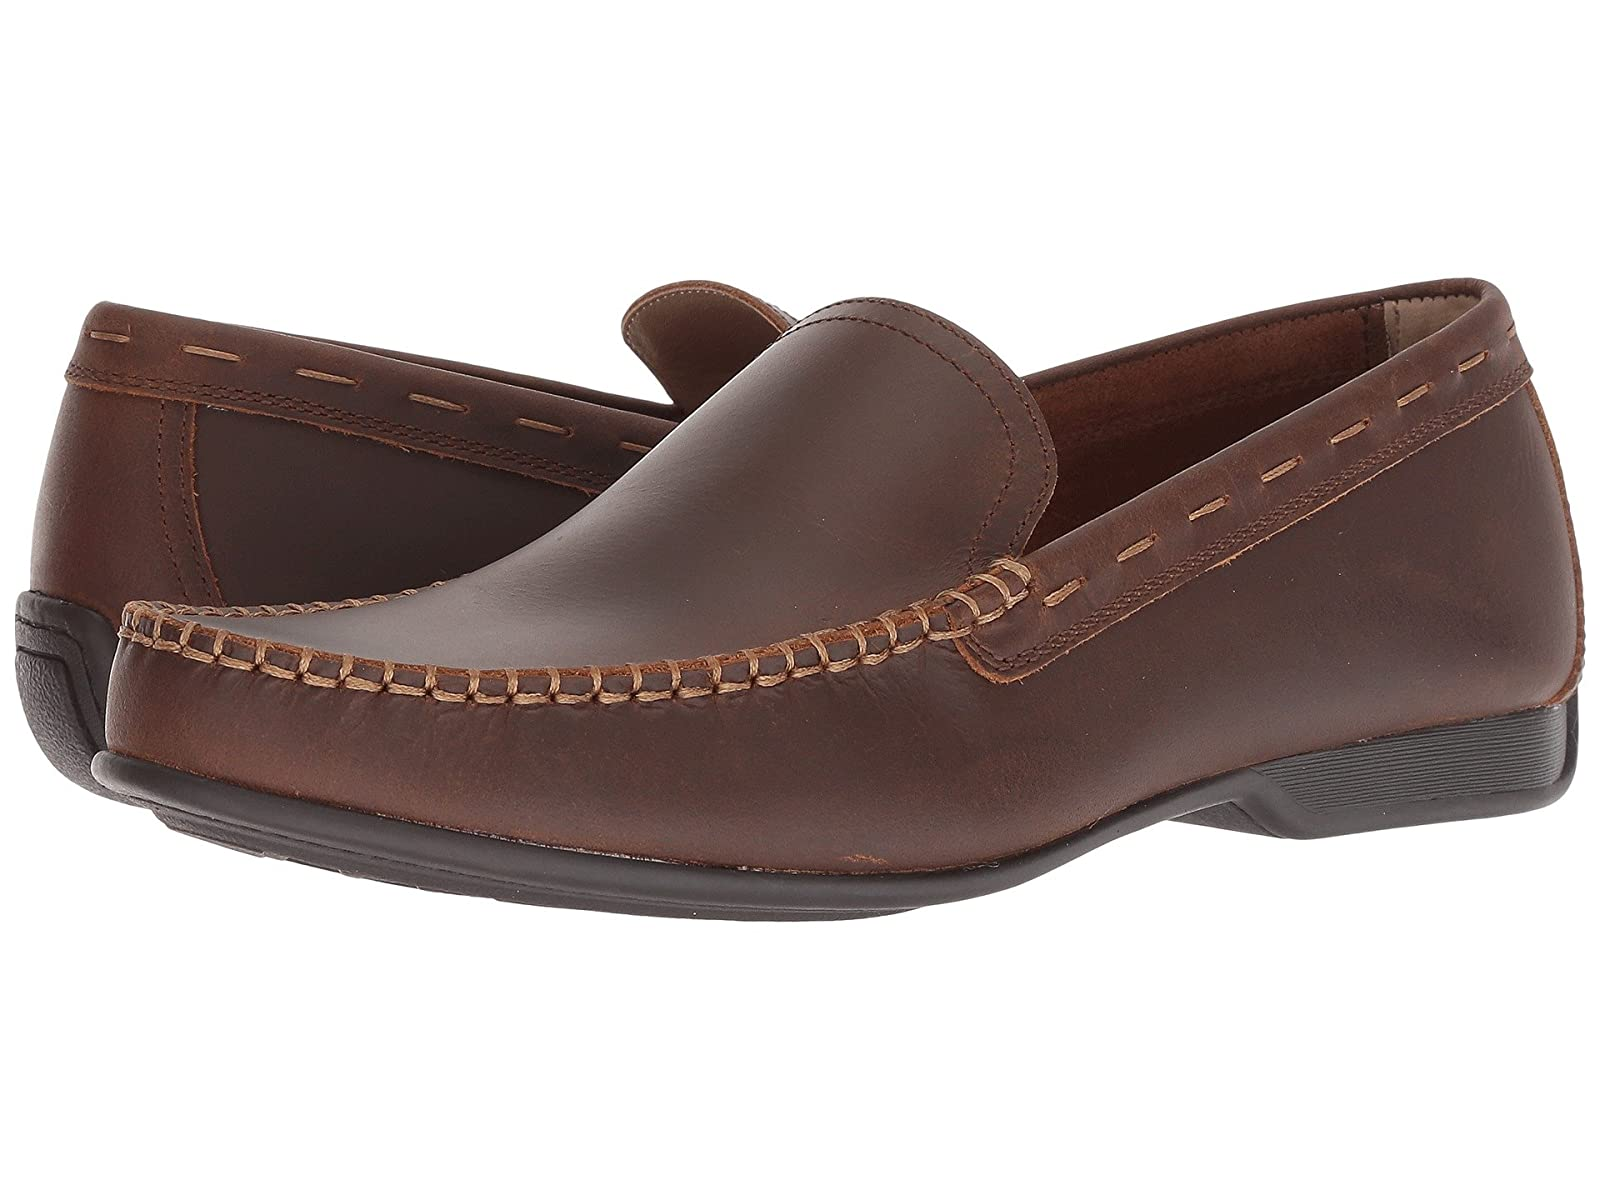 Frye Cliff VenetianCheap and distinctive eye-catching shoes